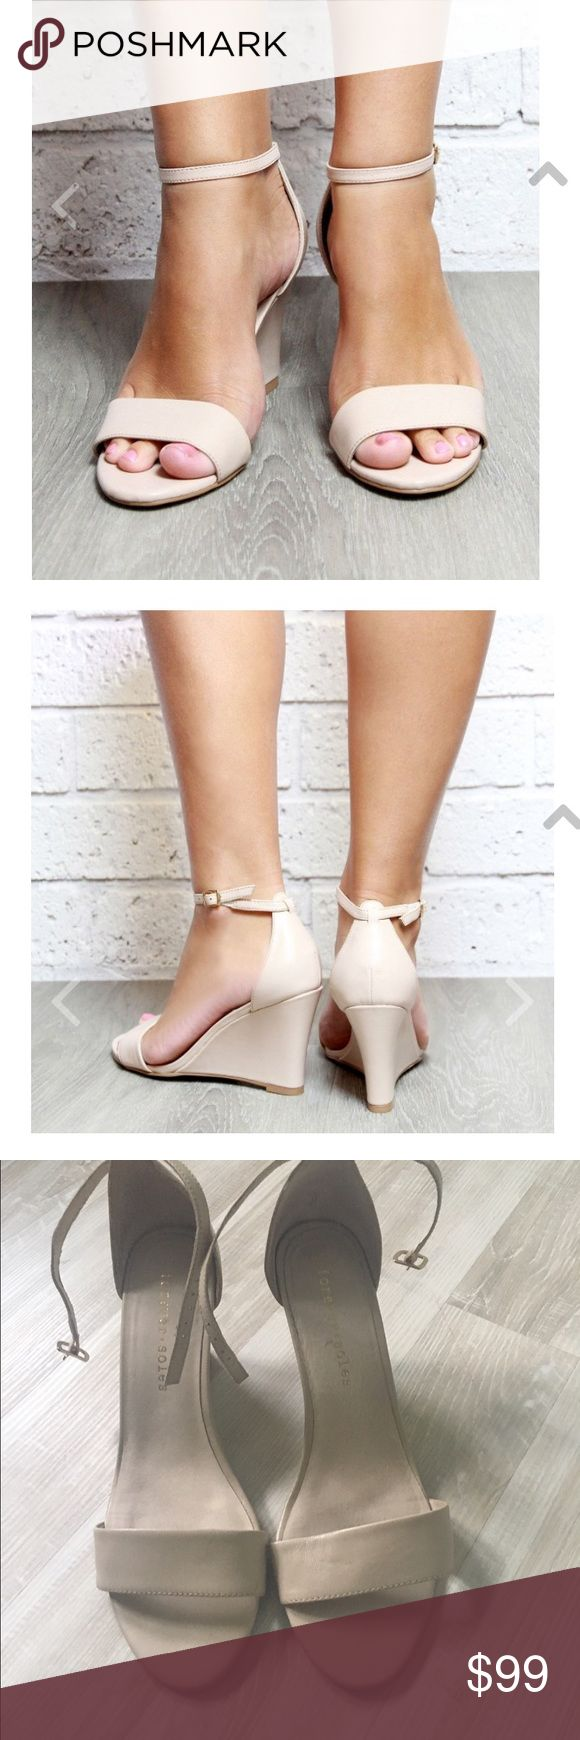 Forever soles, nude, wedding wedges. Forever soles, nude, wedding wedges. Size 9 Forever Soles Shoes Wedges